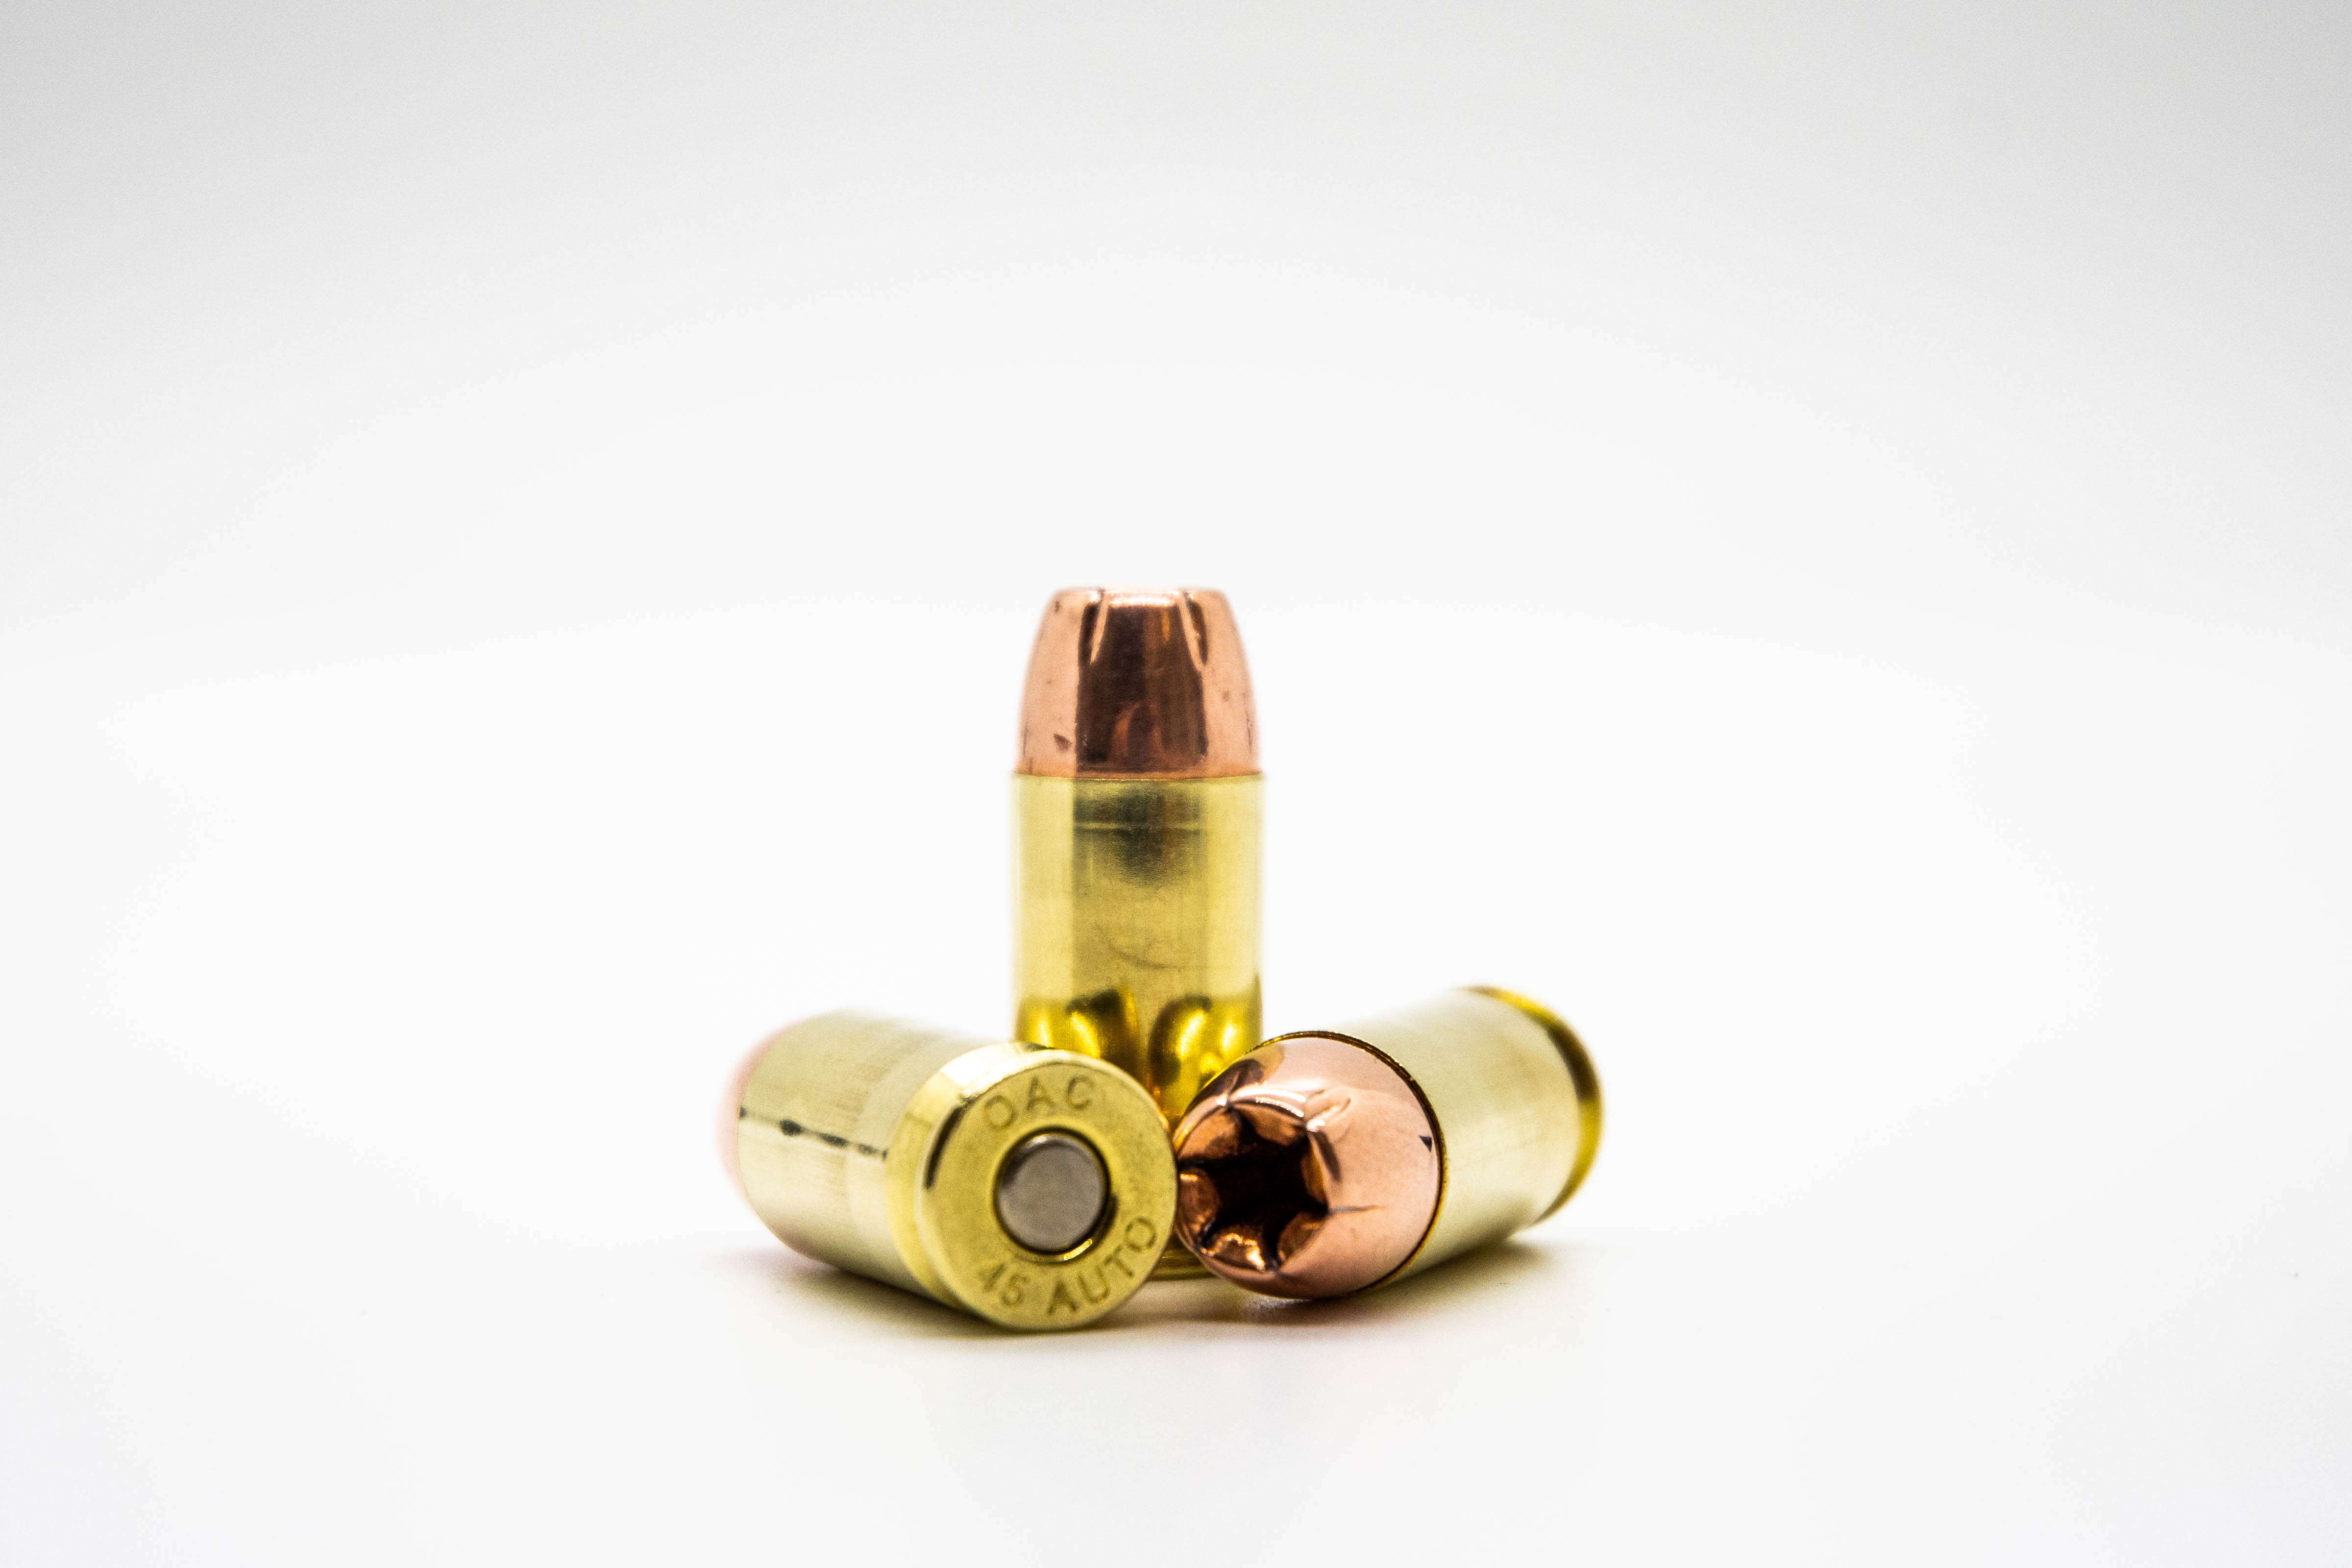 (50 Rounds) NEW .45 ACP 230 Grain HHP